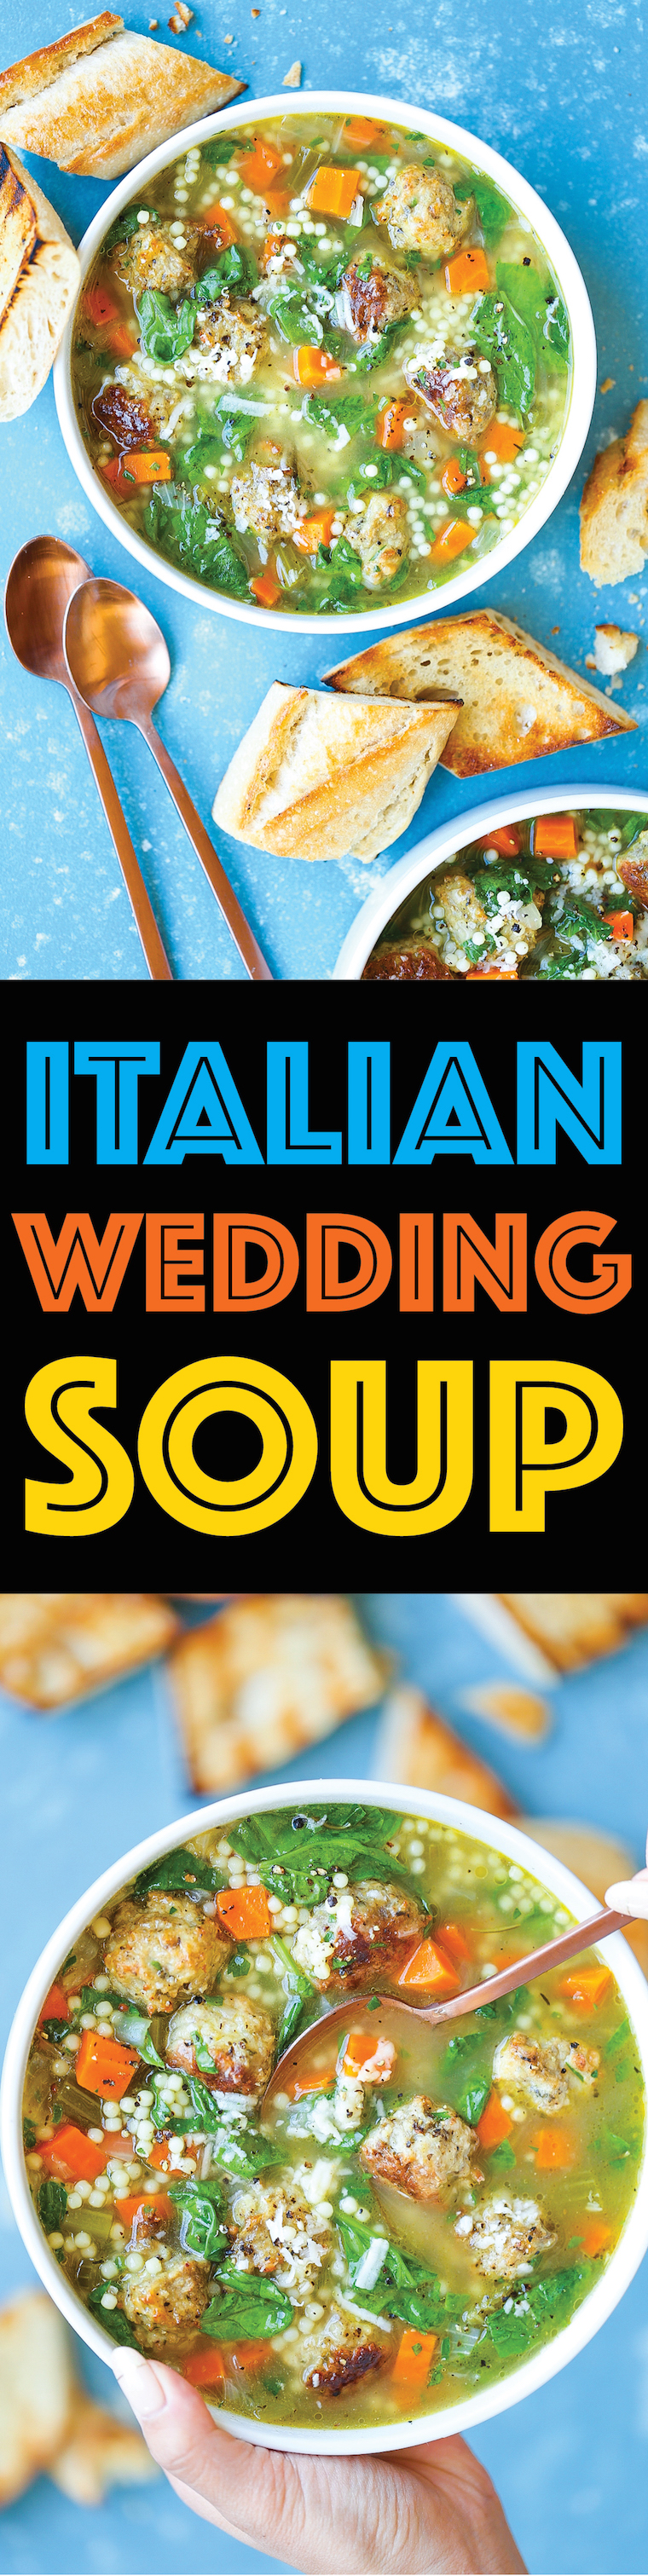 Italian Wedding Soup - Made with the most perfectly tender, juicy, chicken meatballs! So hearty and flavorful. Not to mention, it's simple, quick and easy!